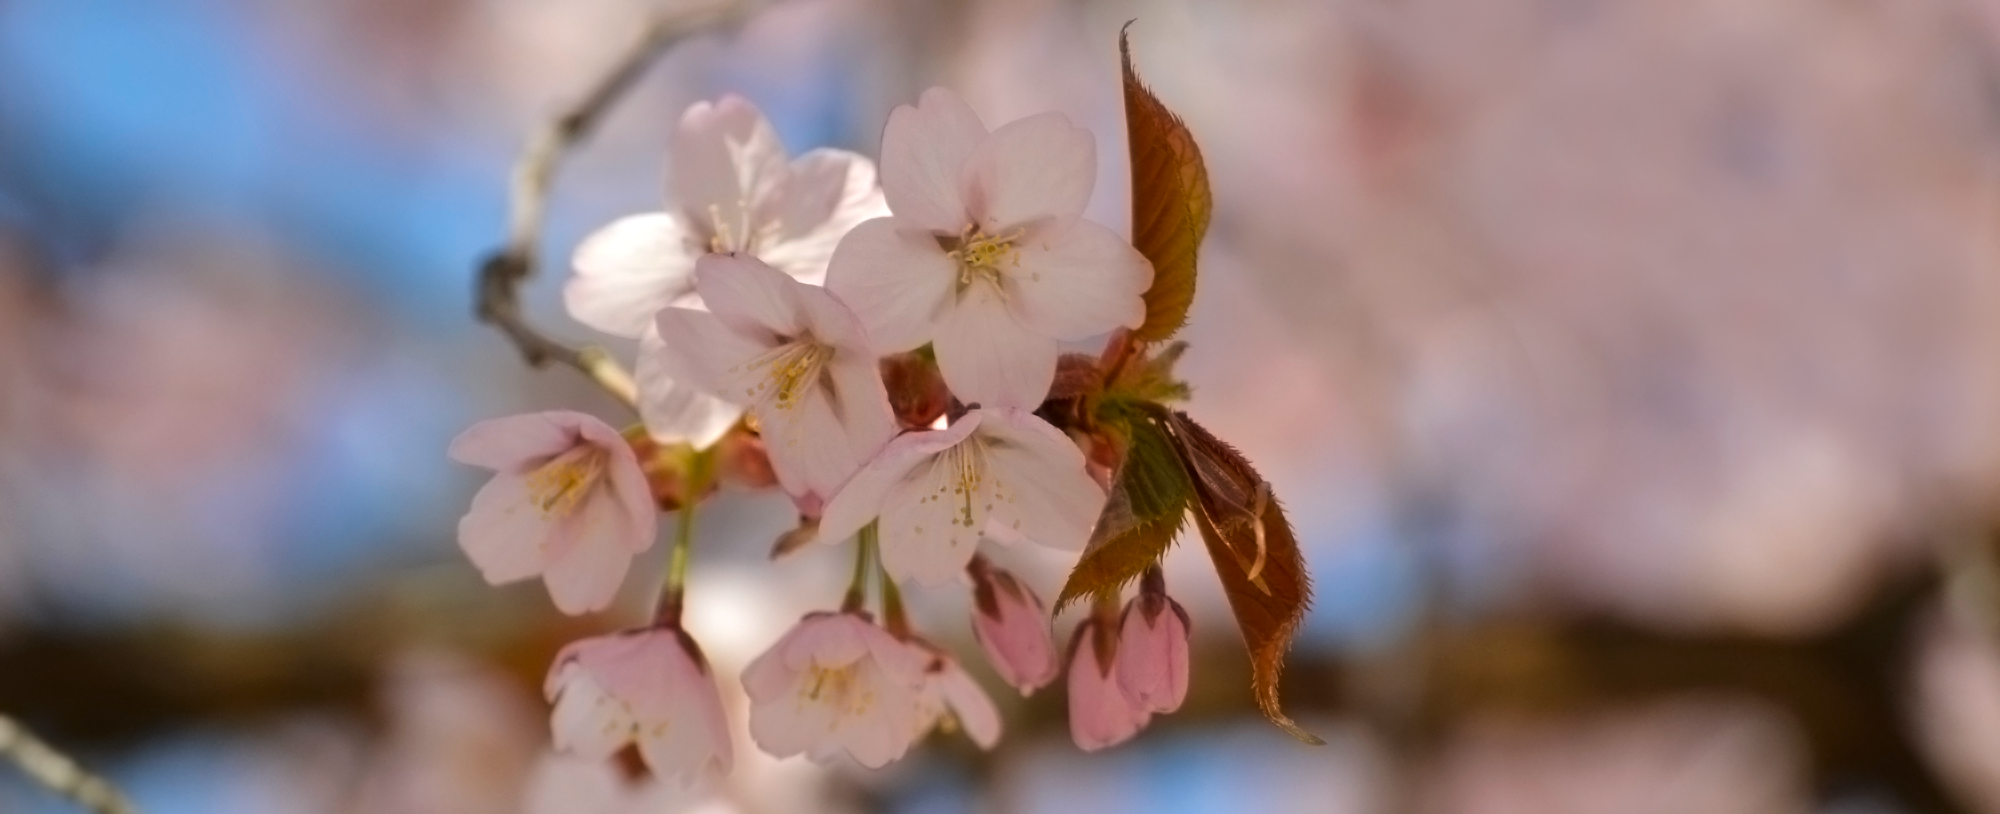 A branch of pink cherry blossoms and buds.